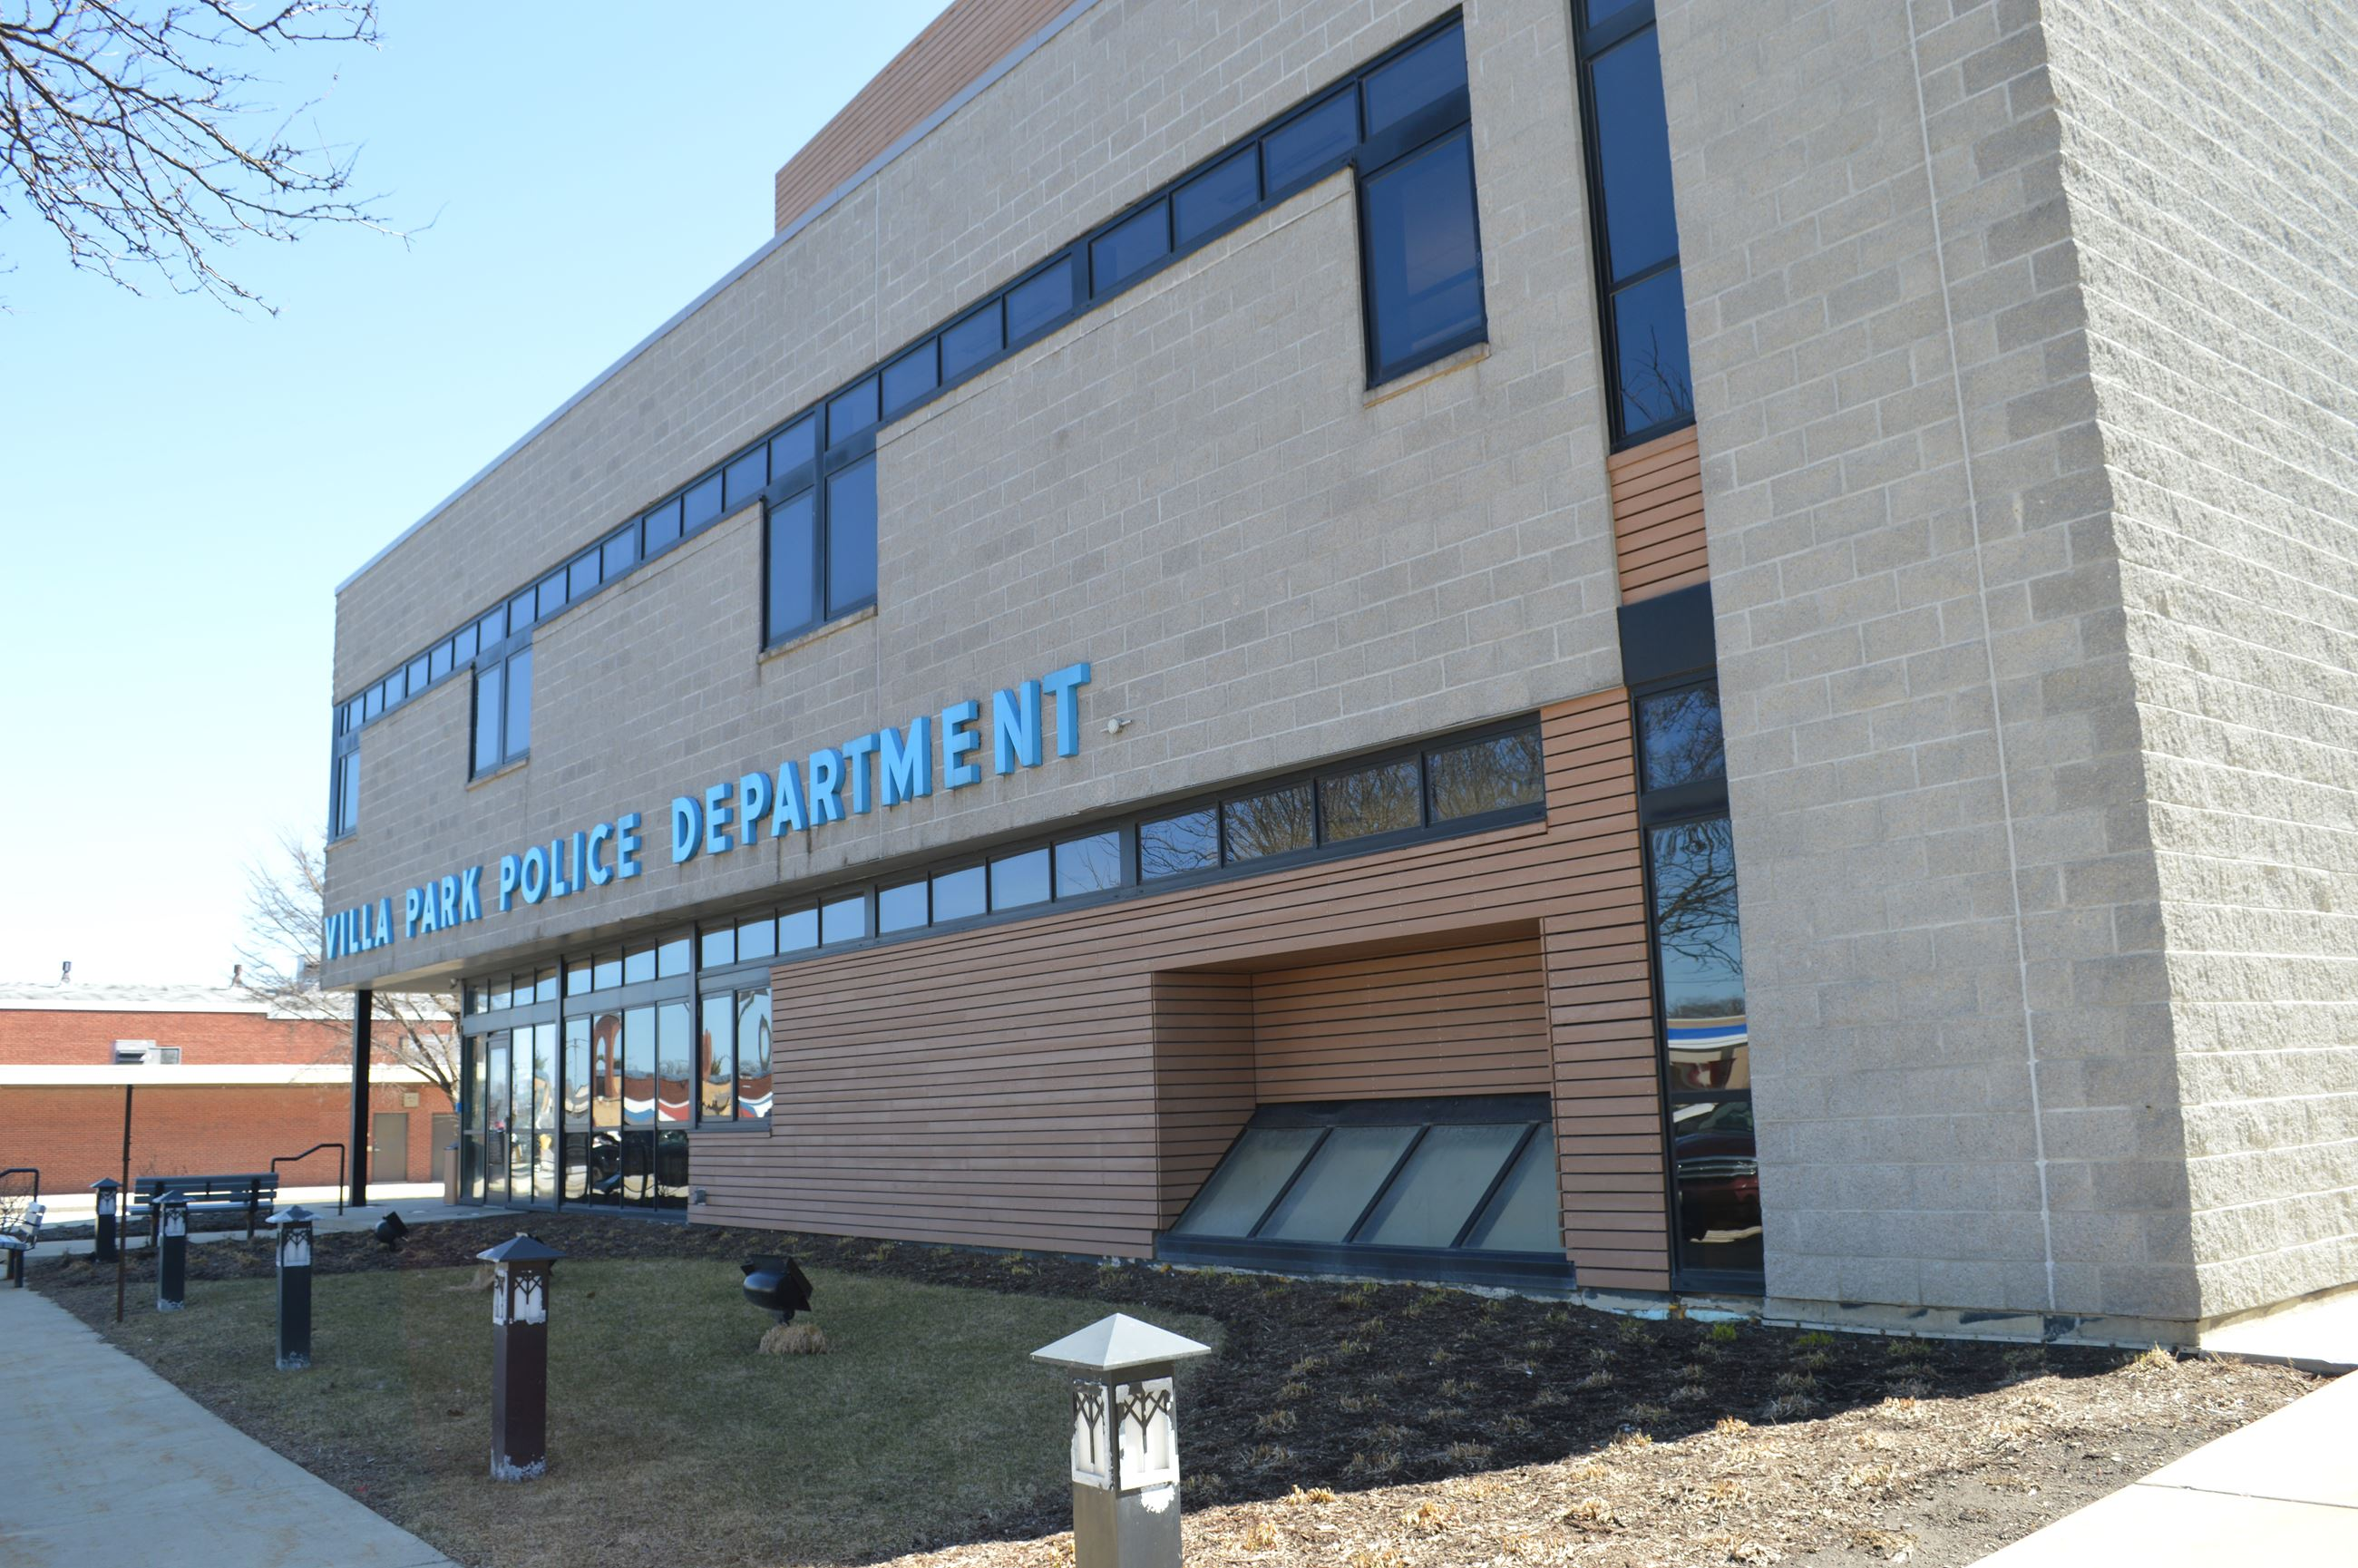 Villa Park Police Department | Villa Park, IL - Official Website